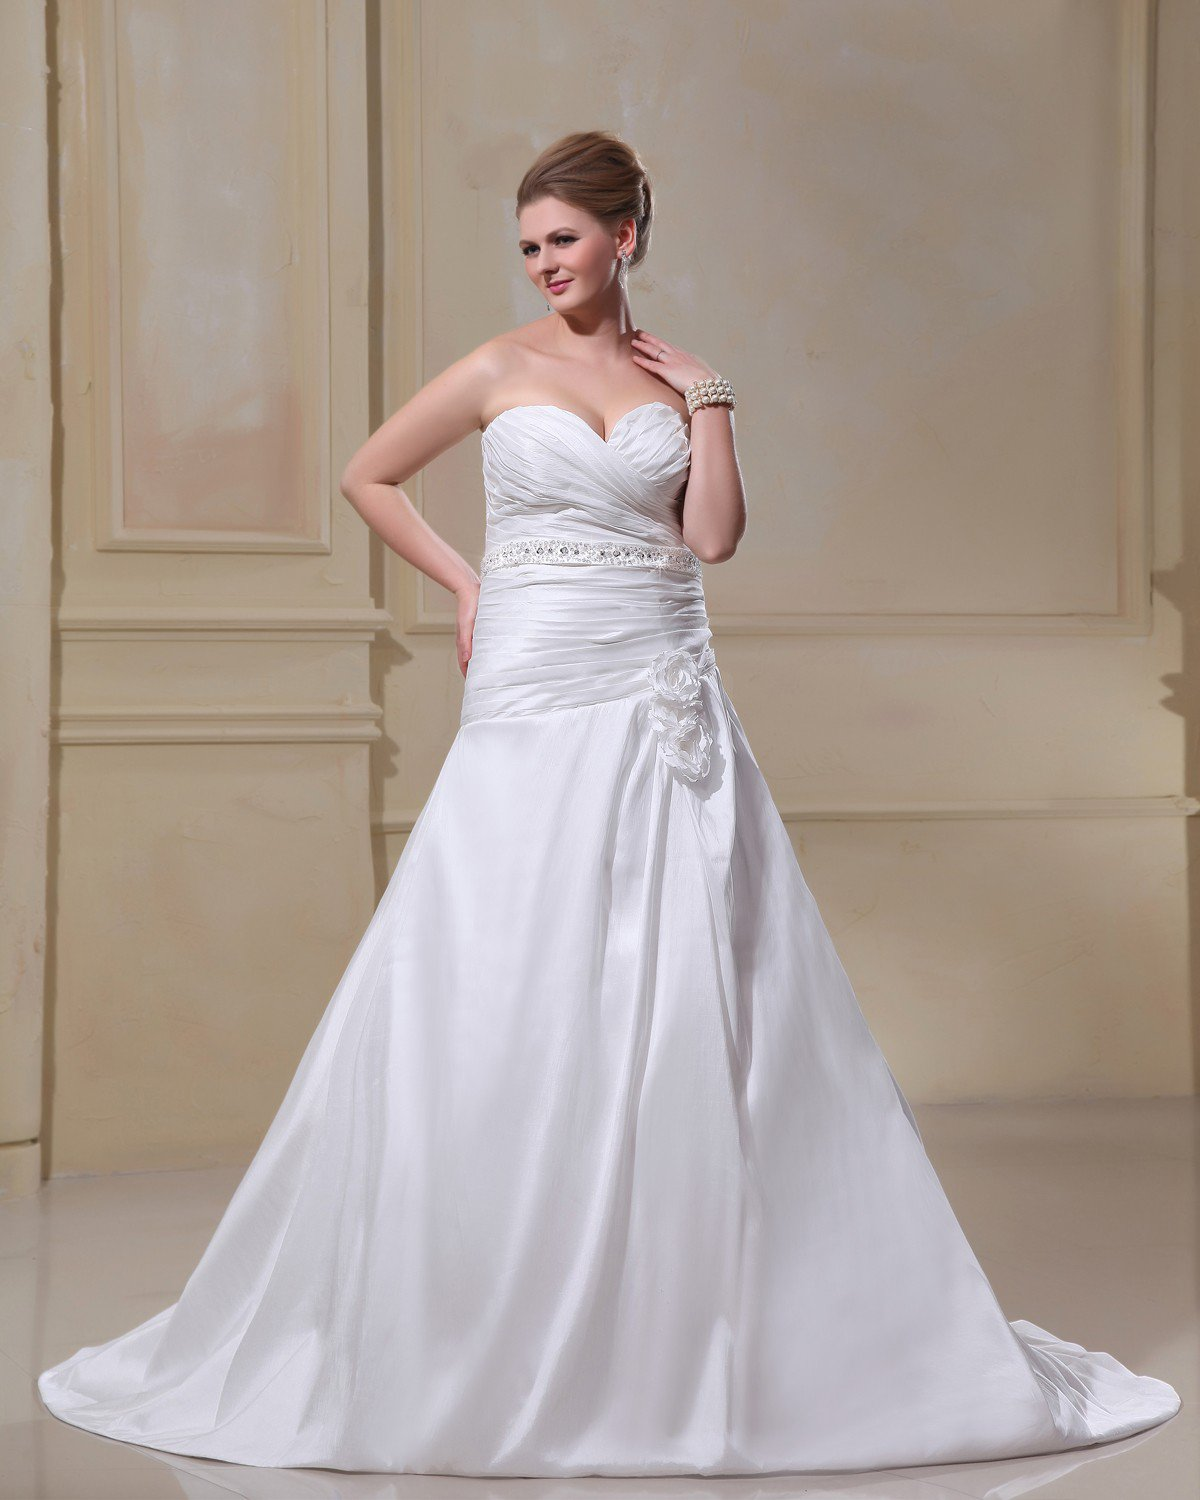 Taffeta Beading Flower Court Plus Size Bridal Gown Wedding Dress